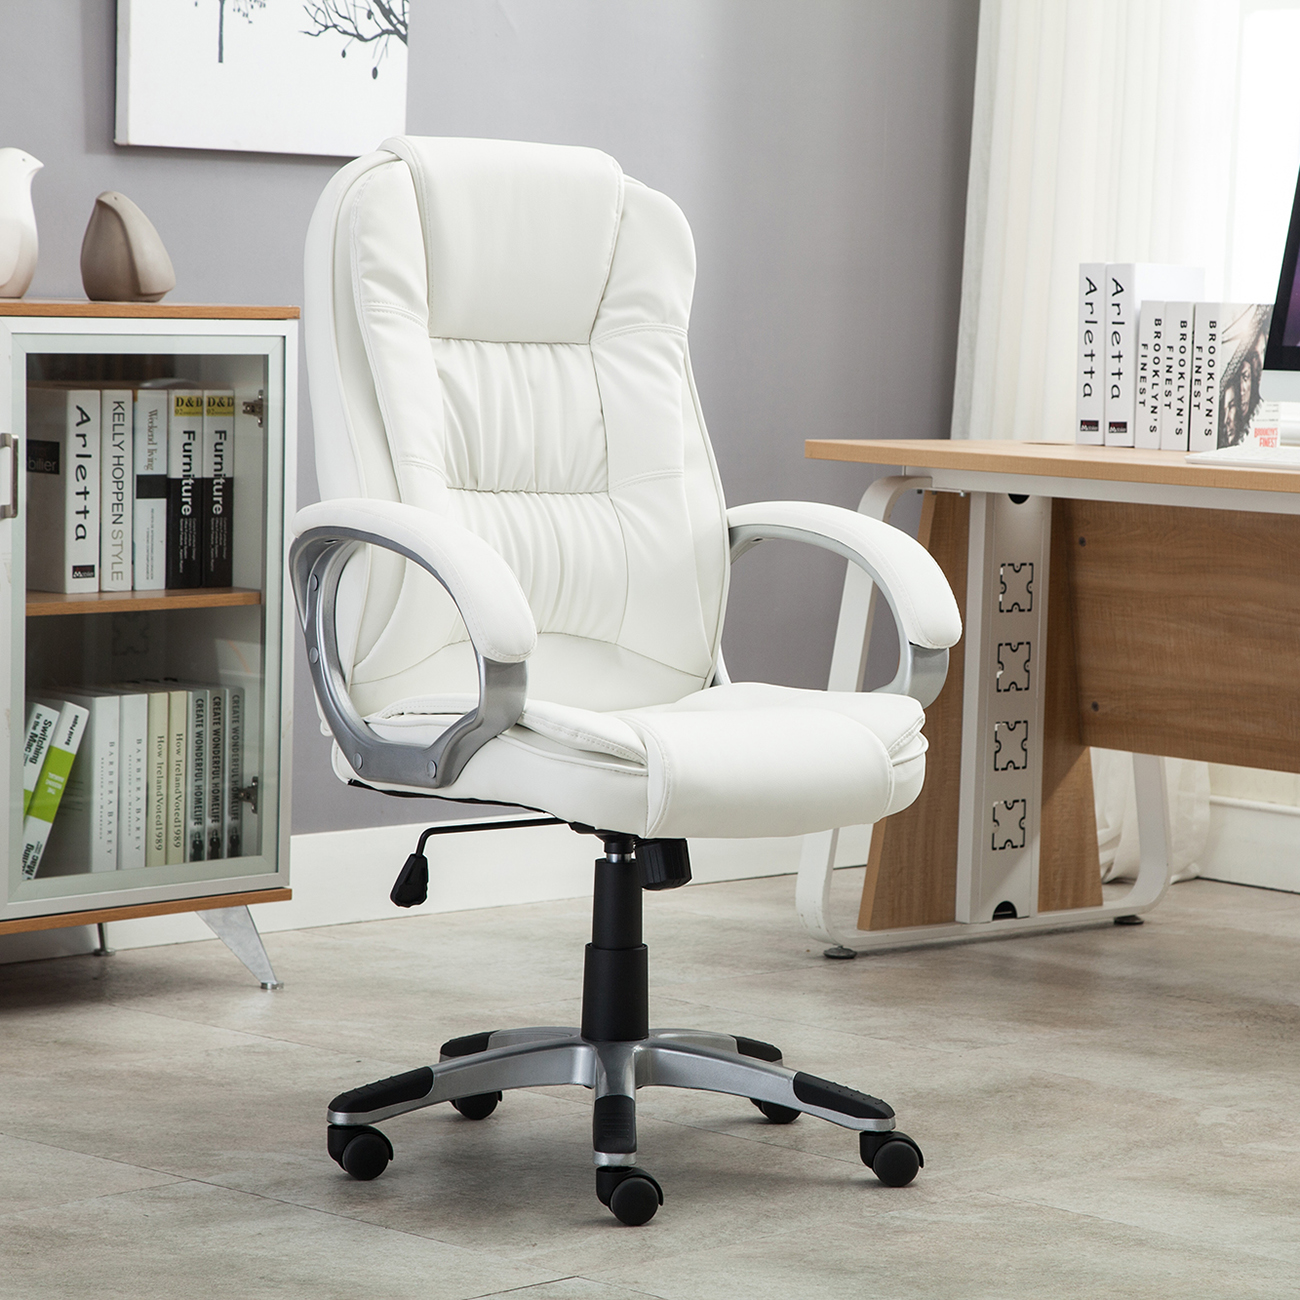 white pu leather high back office chair executive ergonomic computer